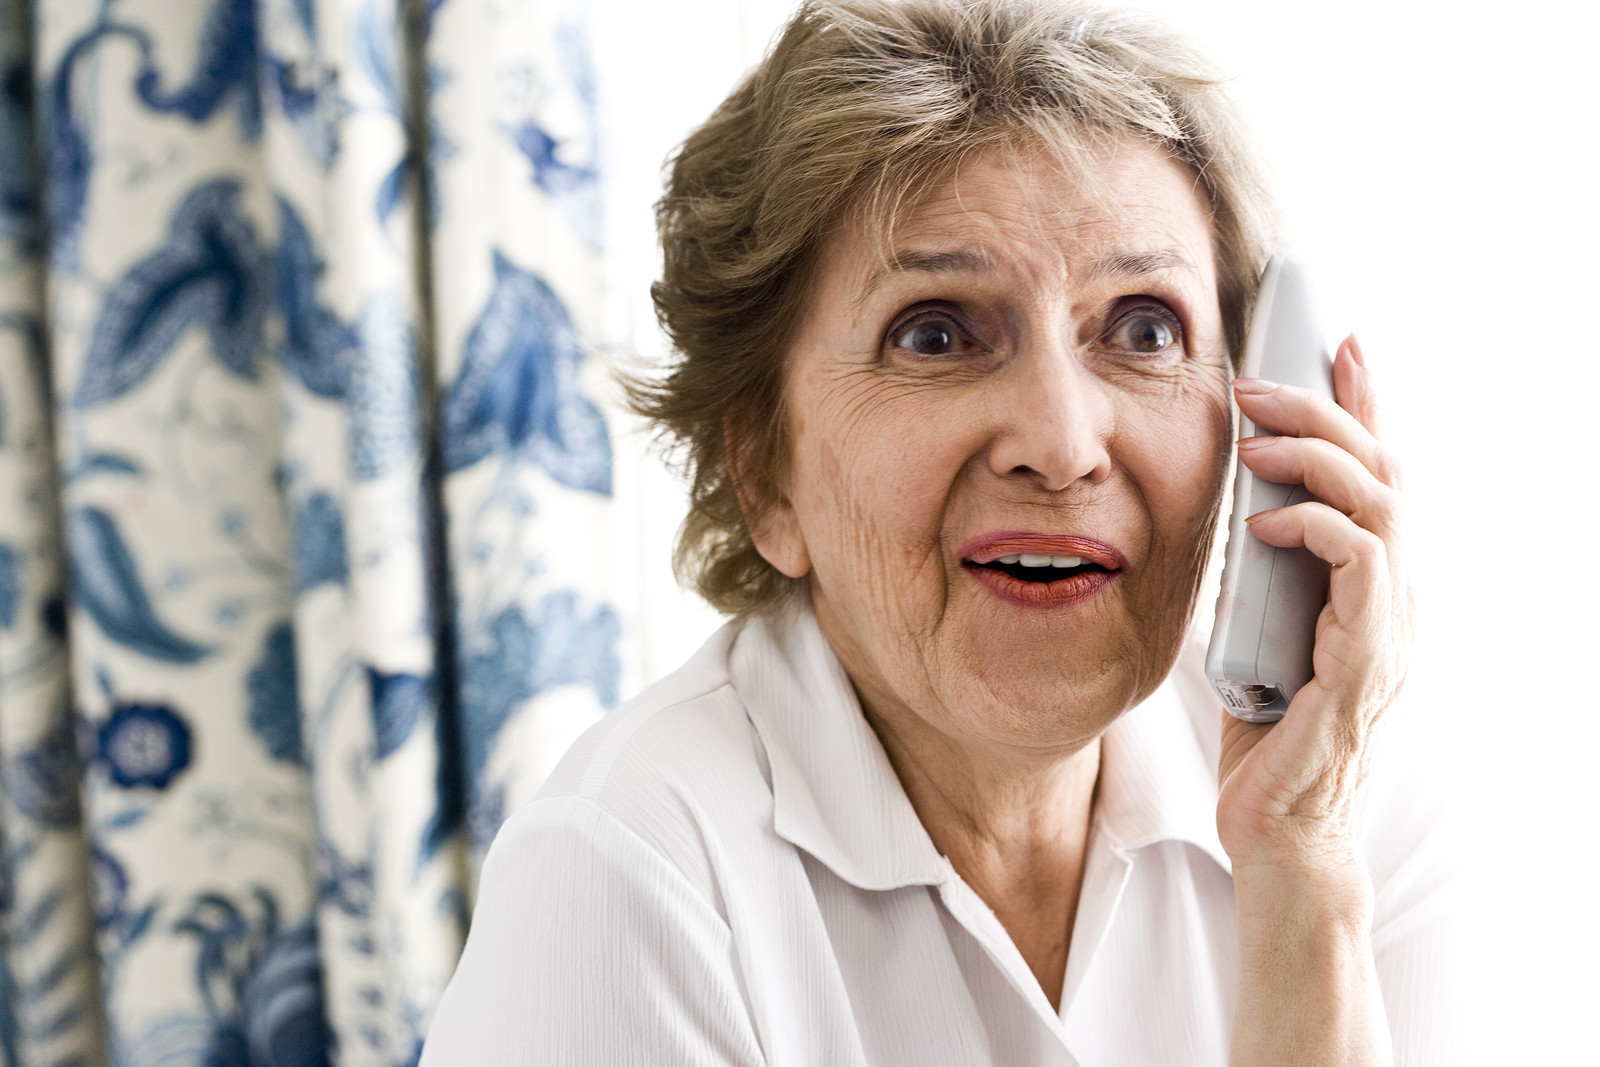 Senior Woman on phone looking engaged in the conversation